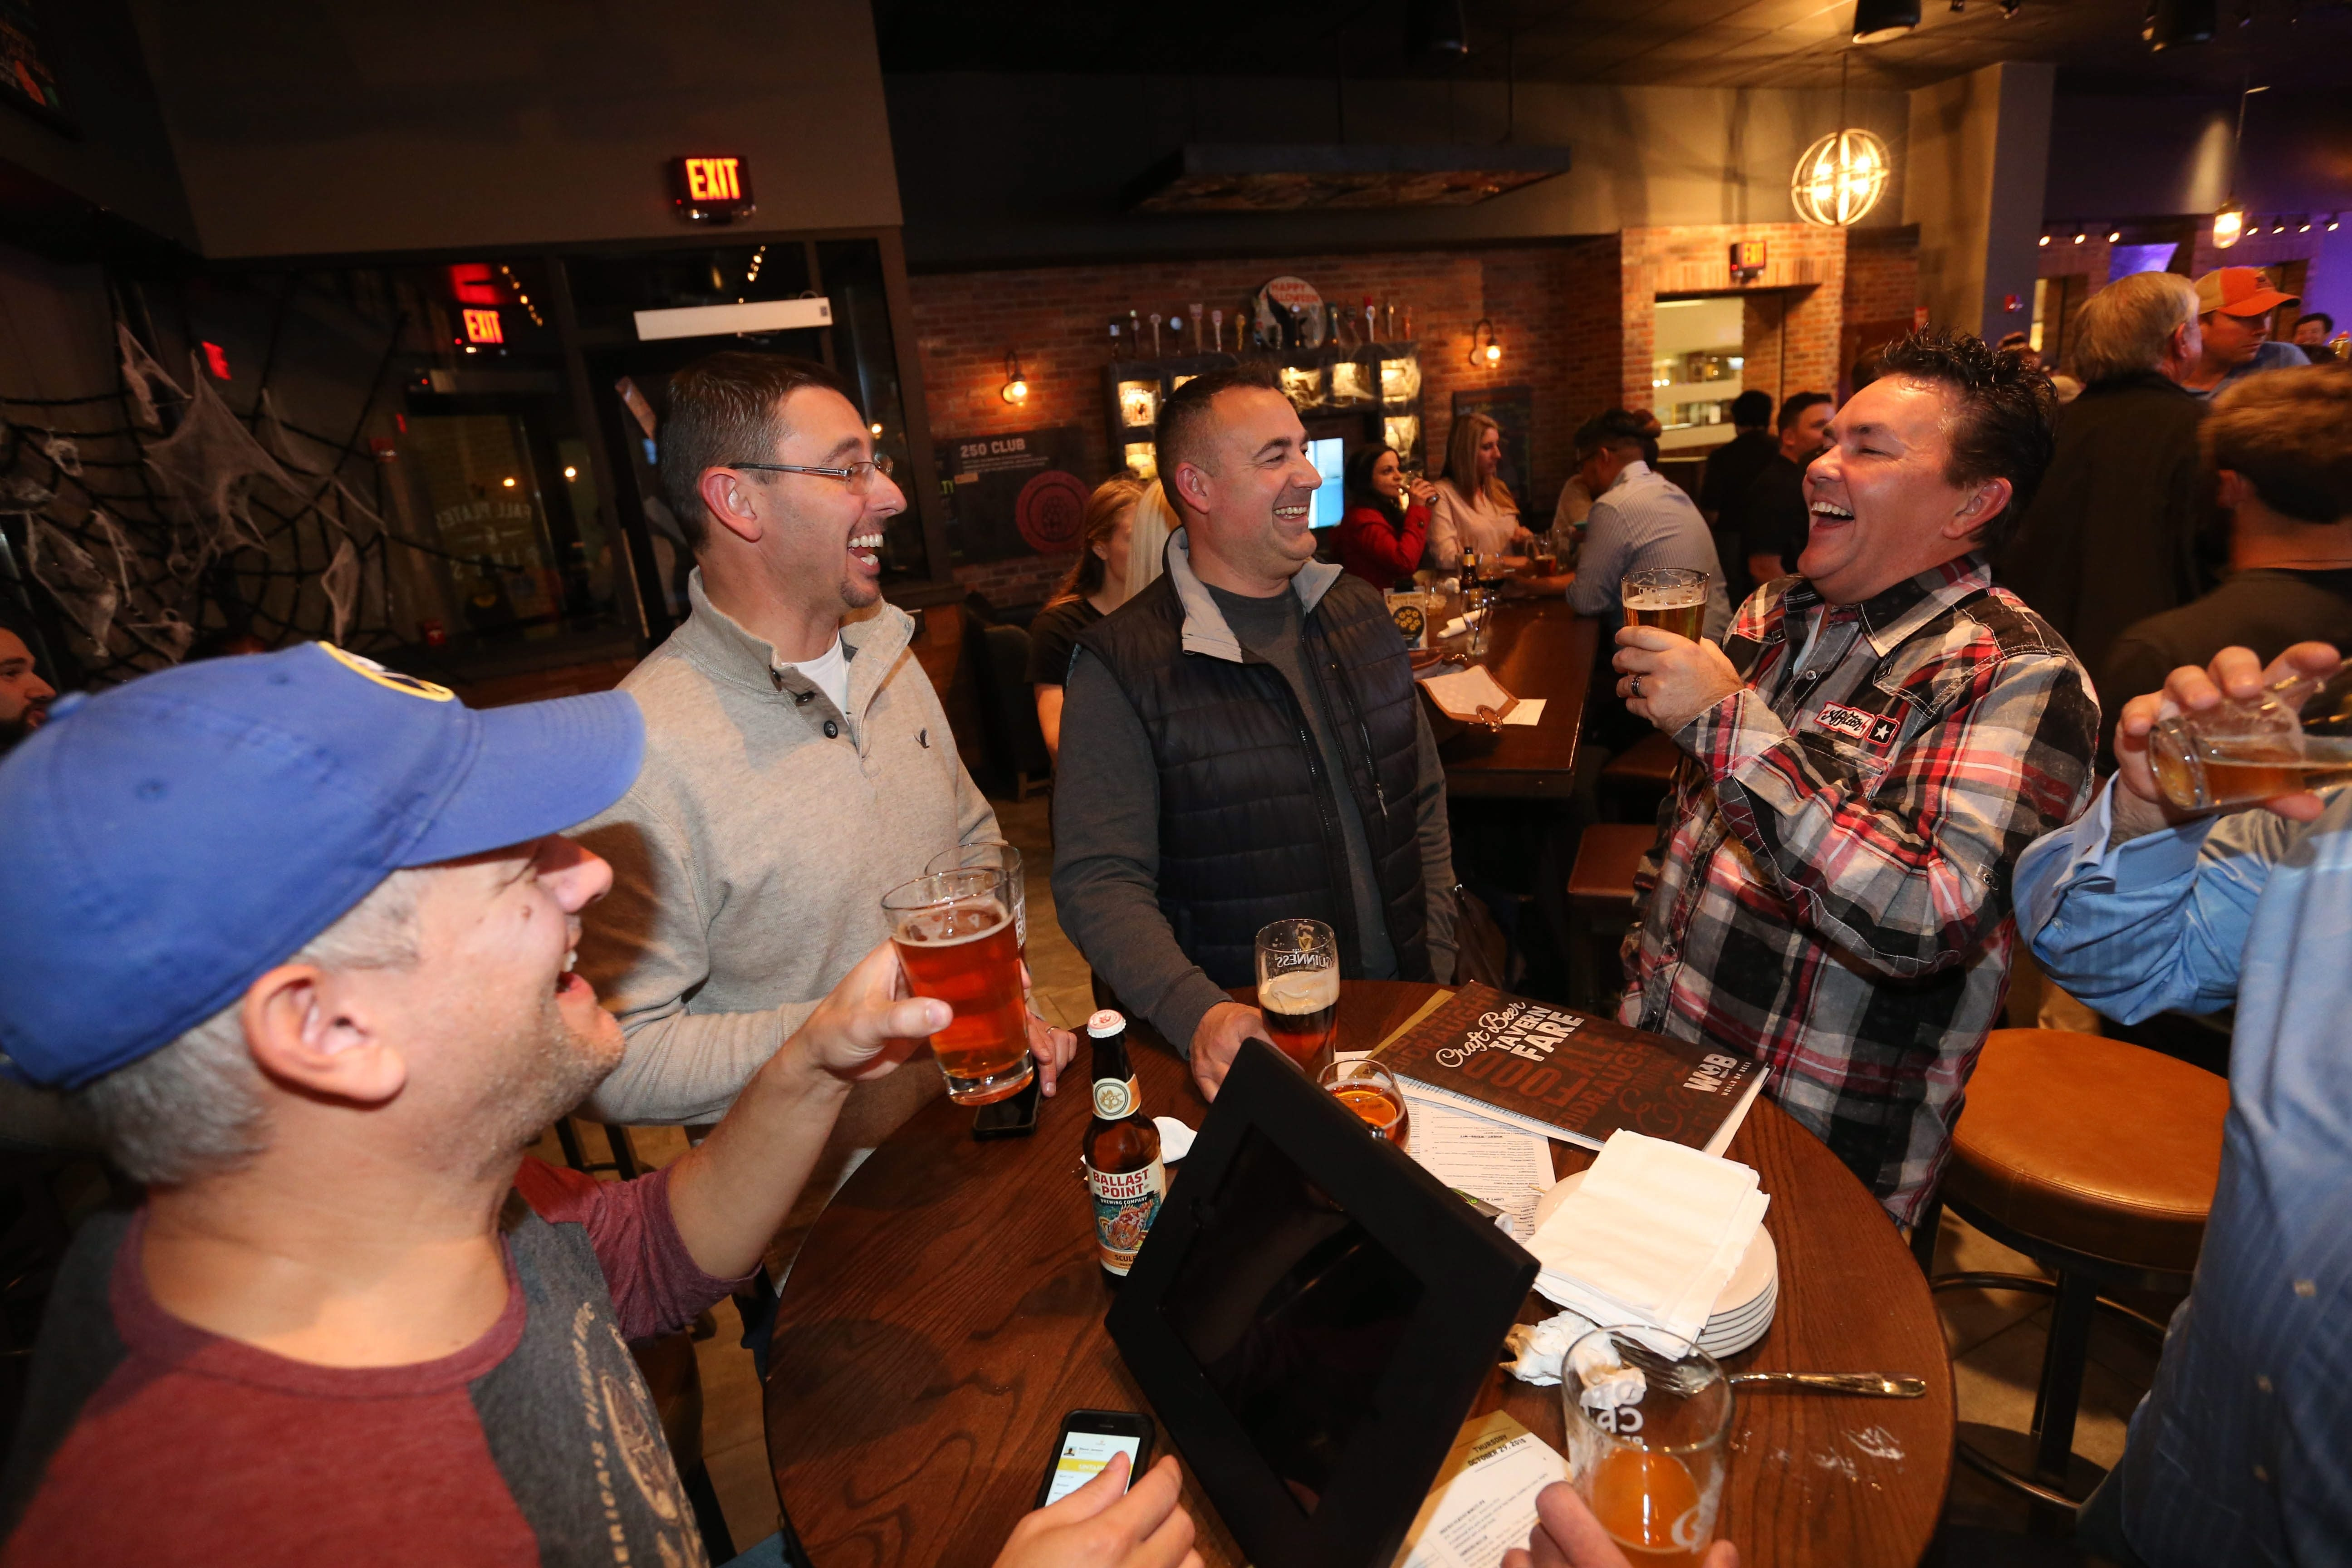 World of Beer is a fun new drinking spot in the Walden Galleria. Steve Jensen, left, Tim Cramer, Tim Pickering and Brian Chapin get in the spirit of the season.